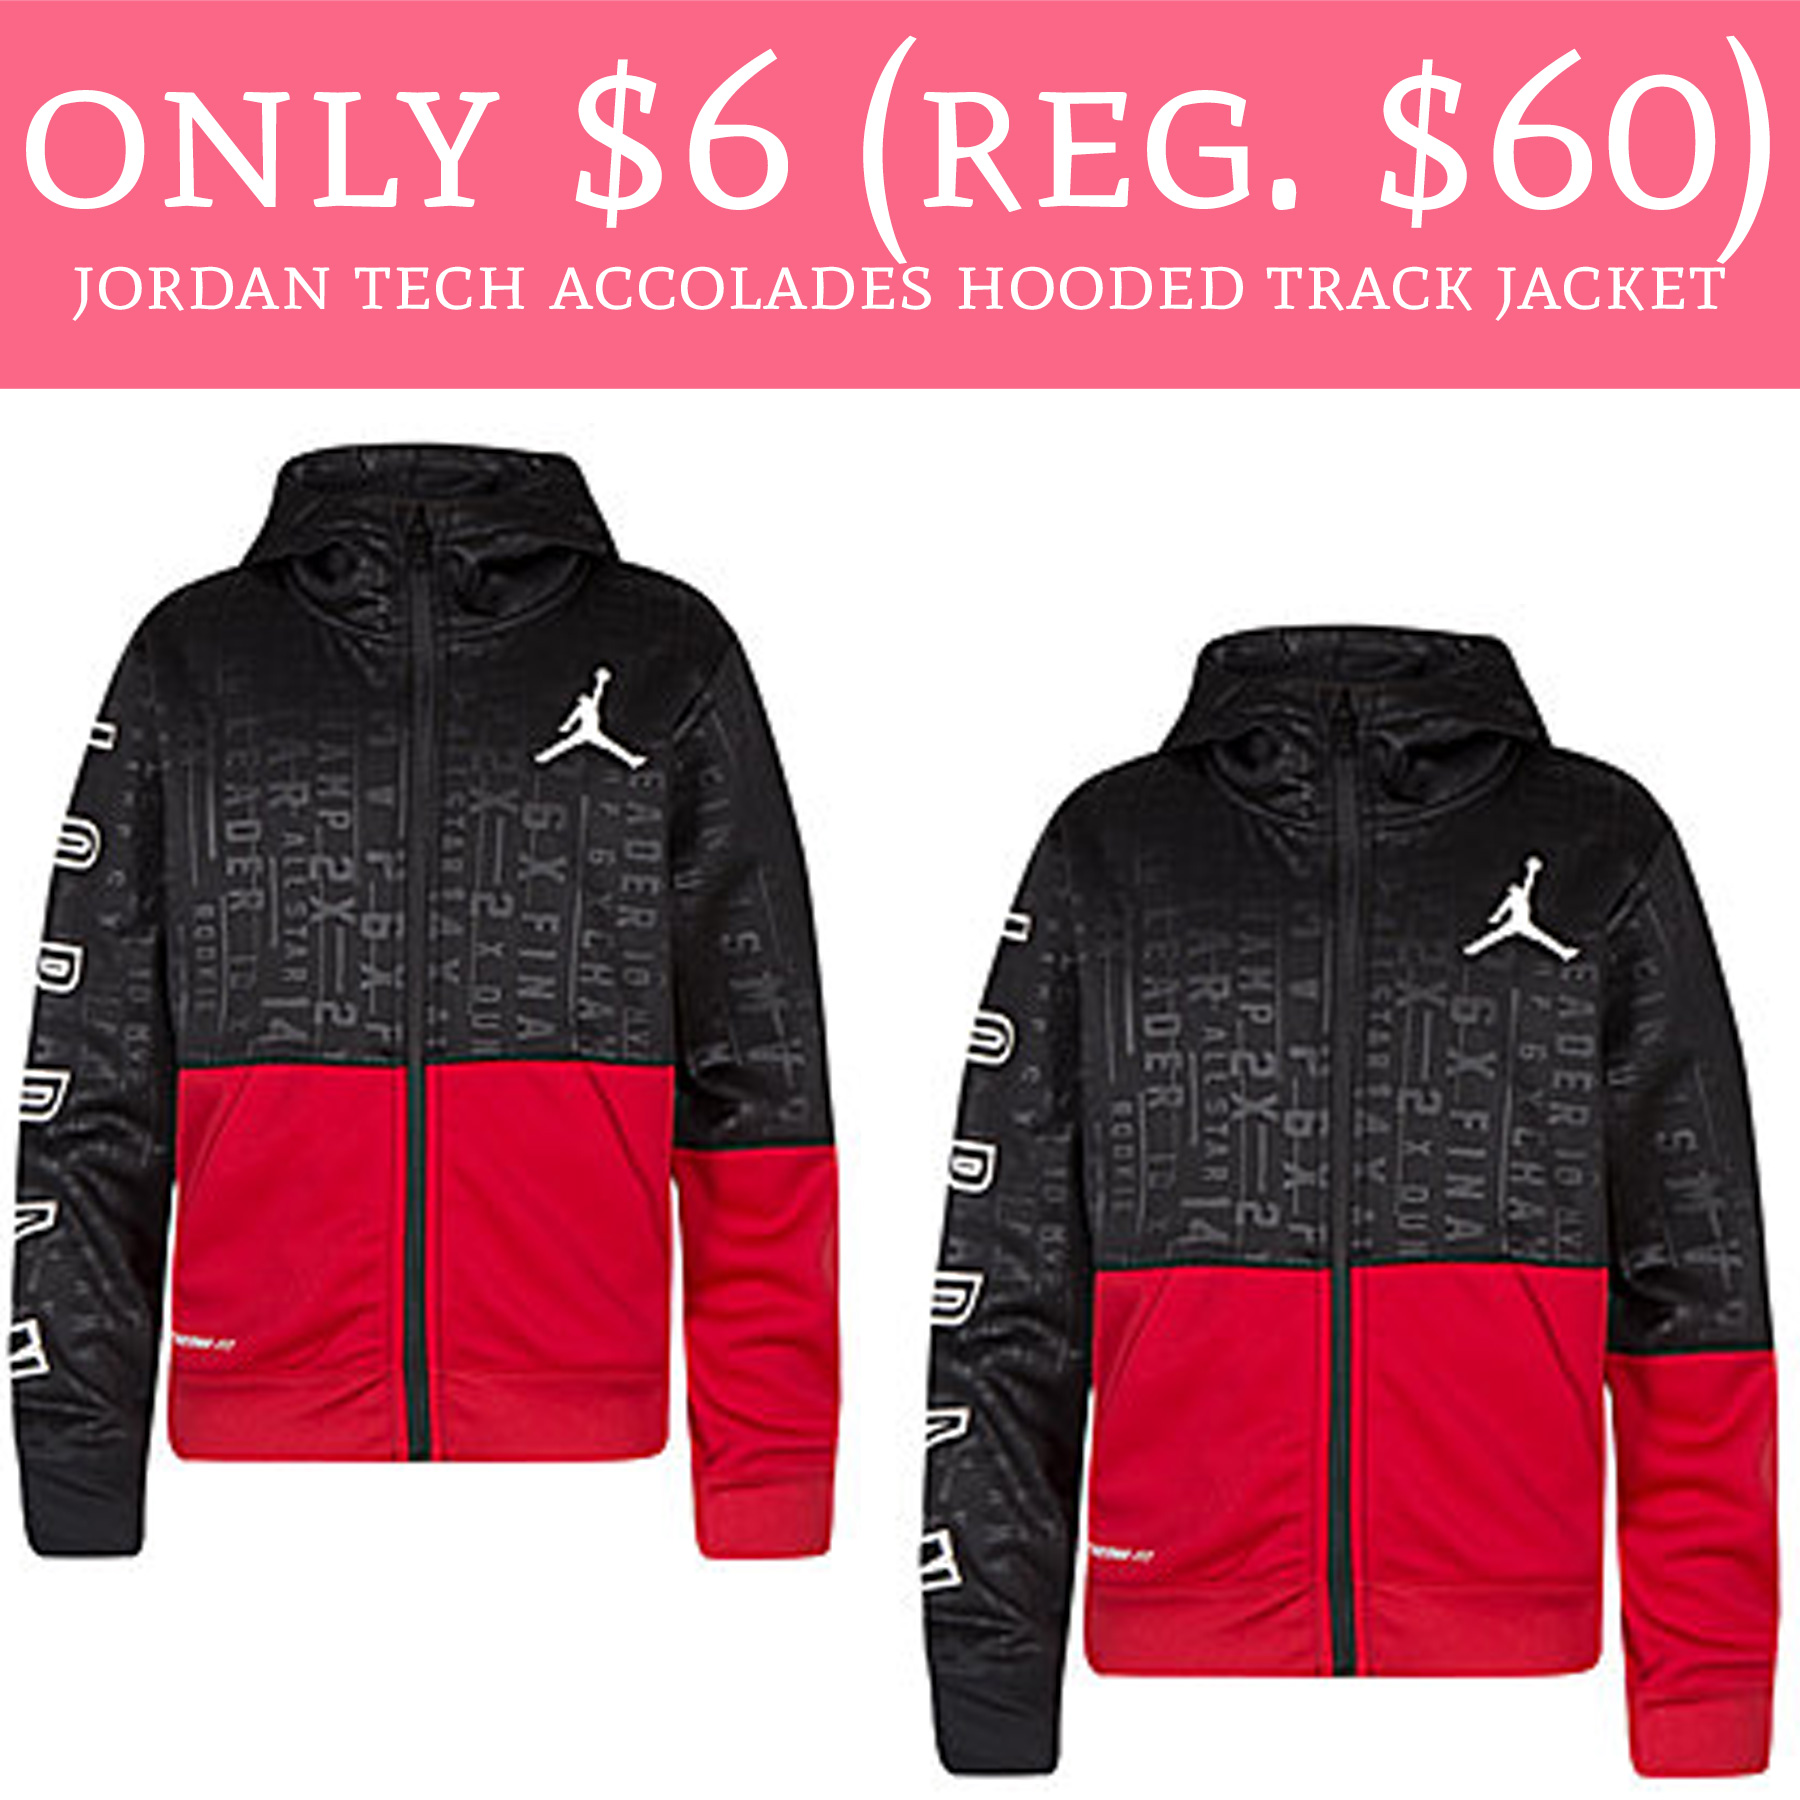 34218d83e39 This won't last long!! Hurry over to Nordstrom.com where you can score the Jordan  Tech Accolades Hooded Track Jacket ...